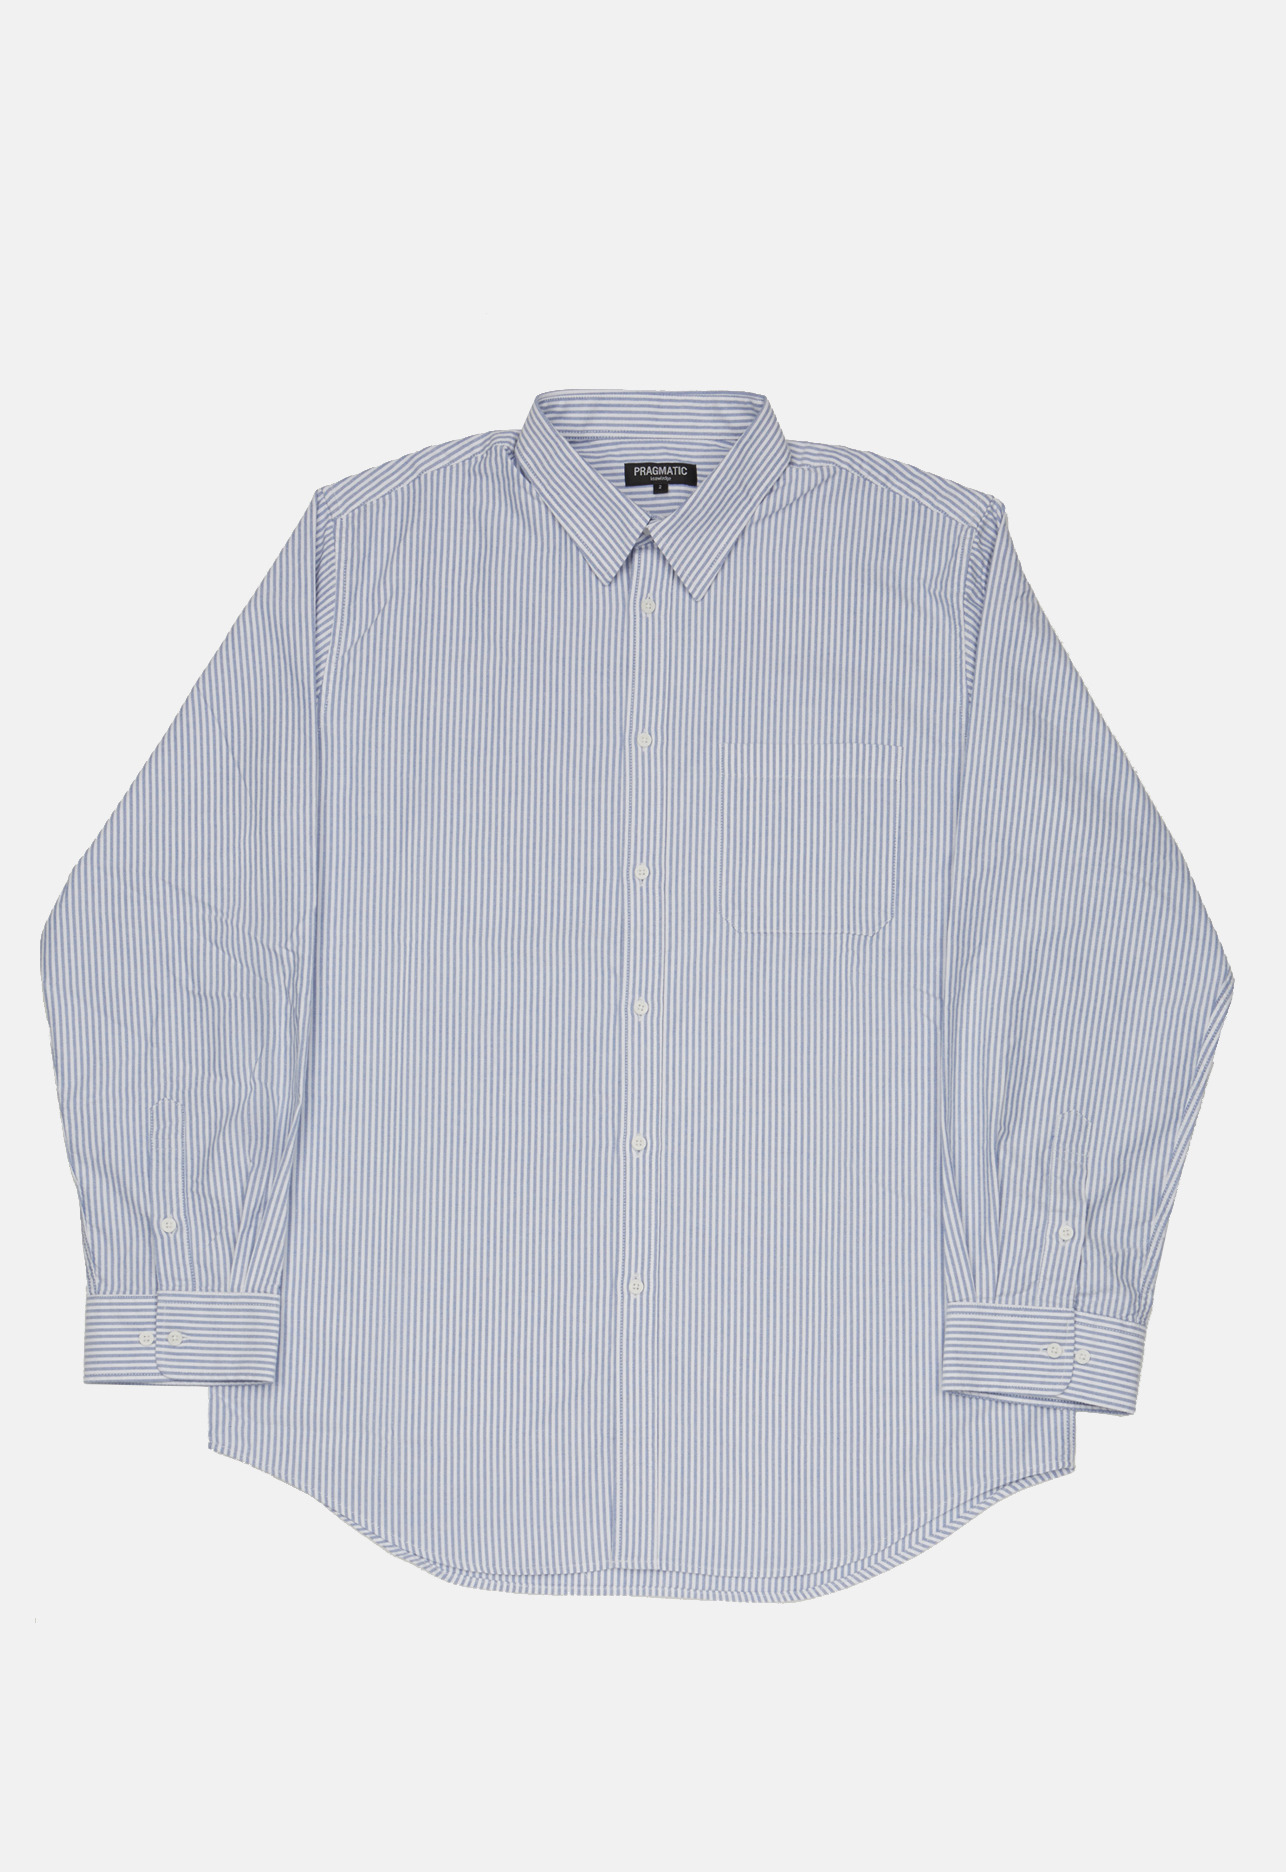 OX STRIPE BIG SHIRTS BLUE